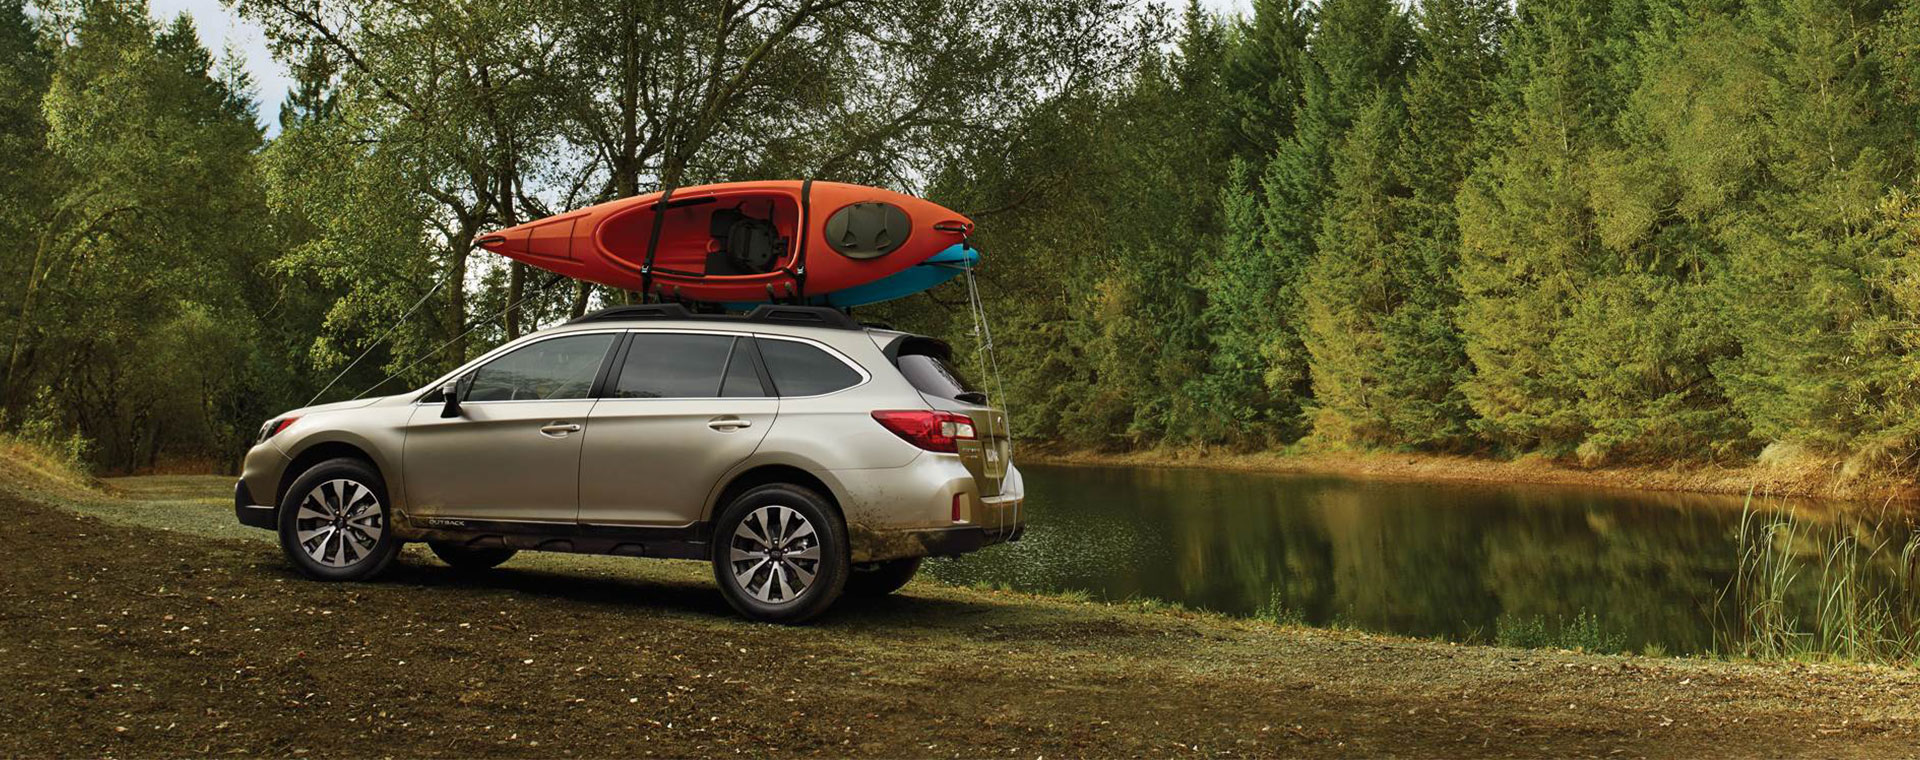 New Outback inventory at Quirk Works Subaru